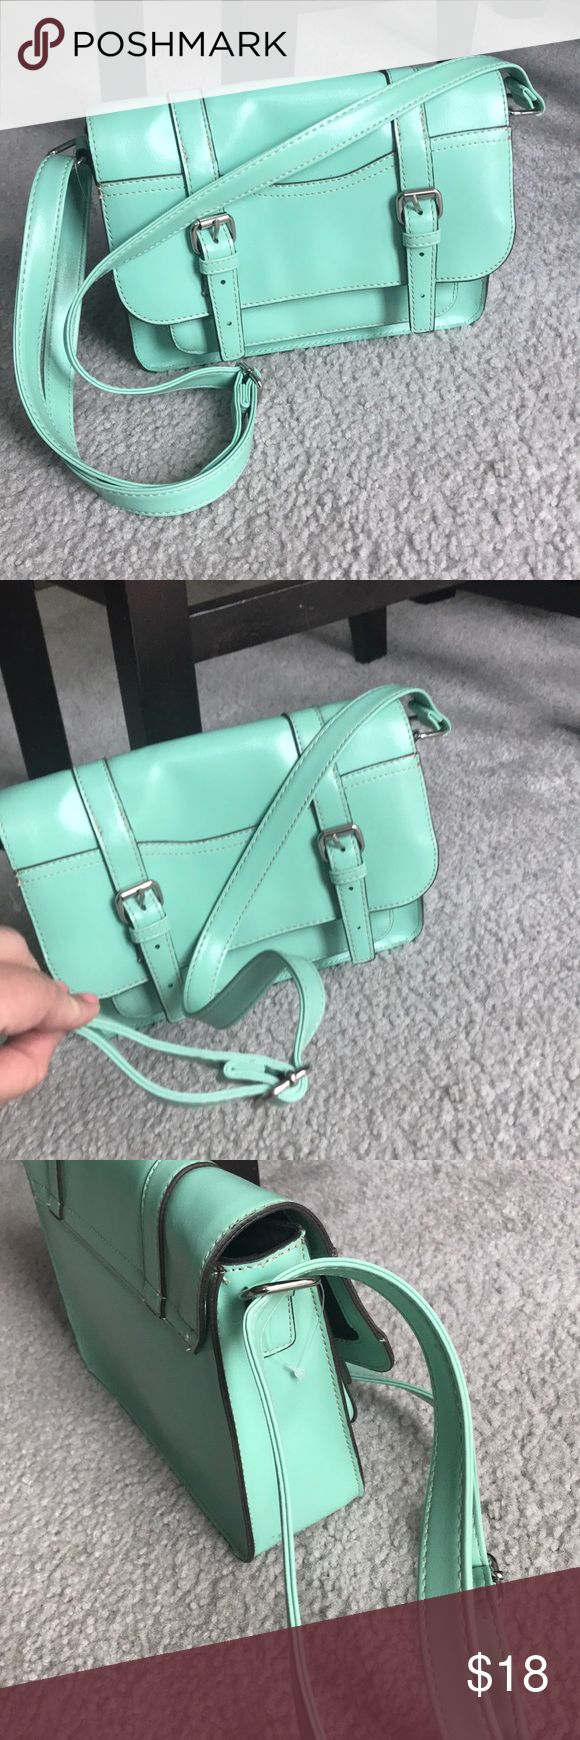 MOSSIMO MINT green Crossbody/Shoulder Bag Excellent condition- Inside and out - PLEASE SEE THE CLOSE UP PIC - very faint pen mark.  Silver tone hardware. Man made materials . One easy access pocket under the bucked flap. Then inside has slot pockets for phone and a zipper pocket. Medium sized bag. Any questions please ask 😃 Mossimo Supply Co Bags Crossbody Bags